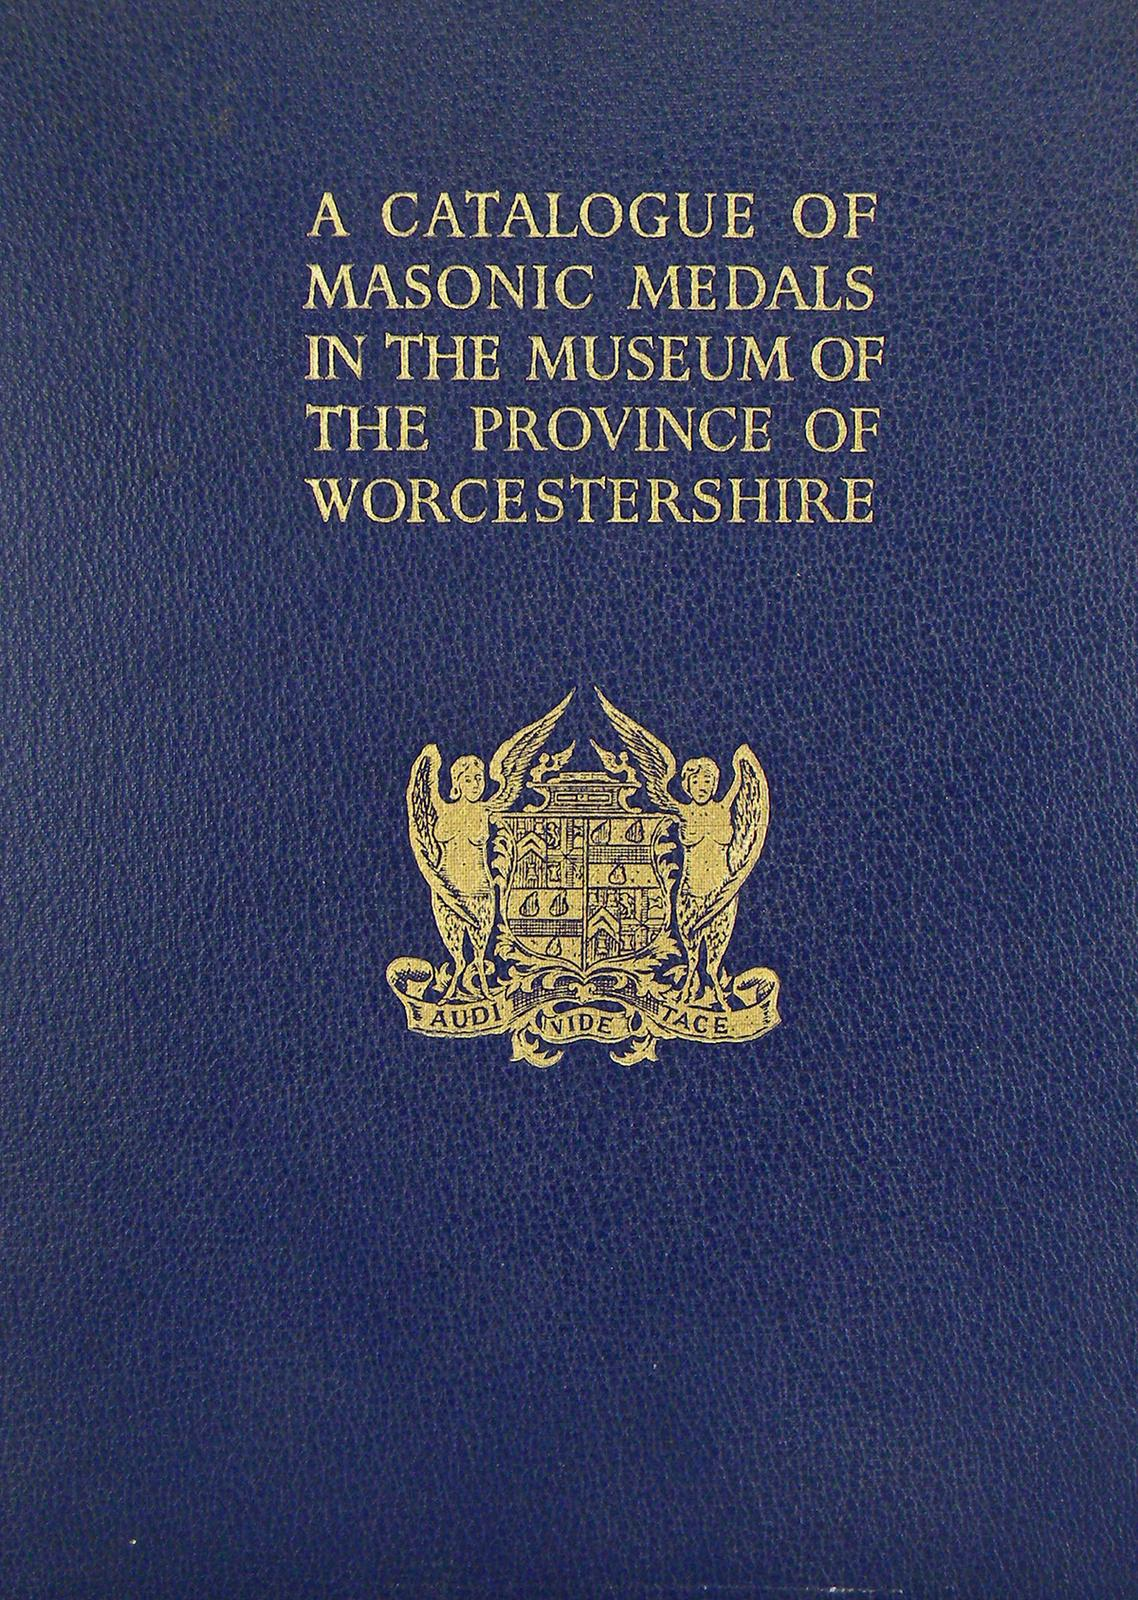 The Worcestershire Collection of Masonic Medals | Kolbe & Fanning